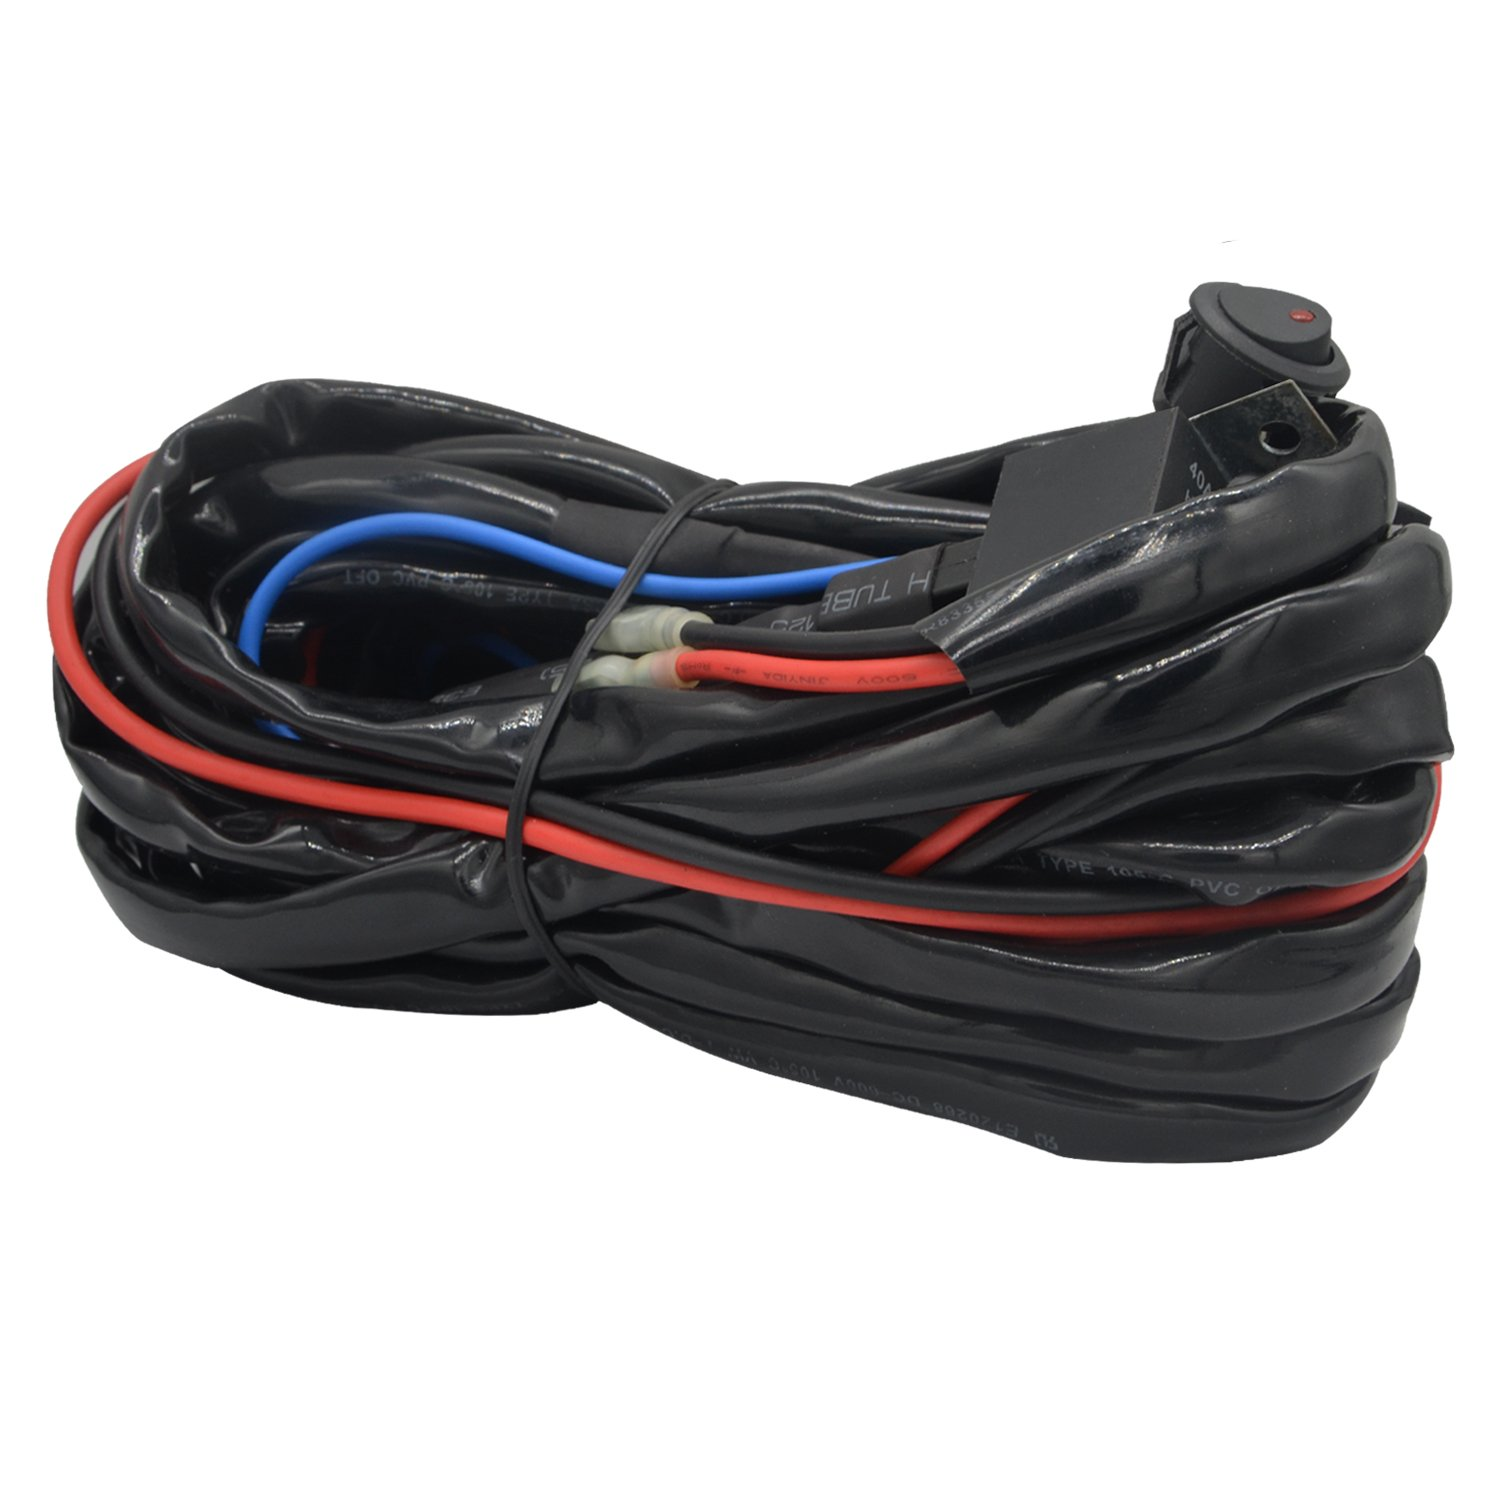 71hdbgsGjCL._SL1500_ amazon com wiring harnesses electrical automotive  at gsmx.co